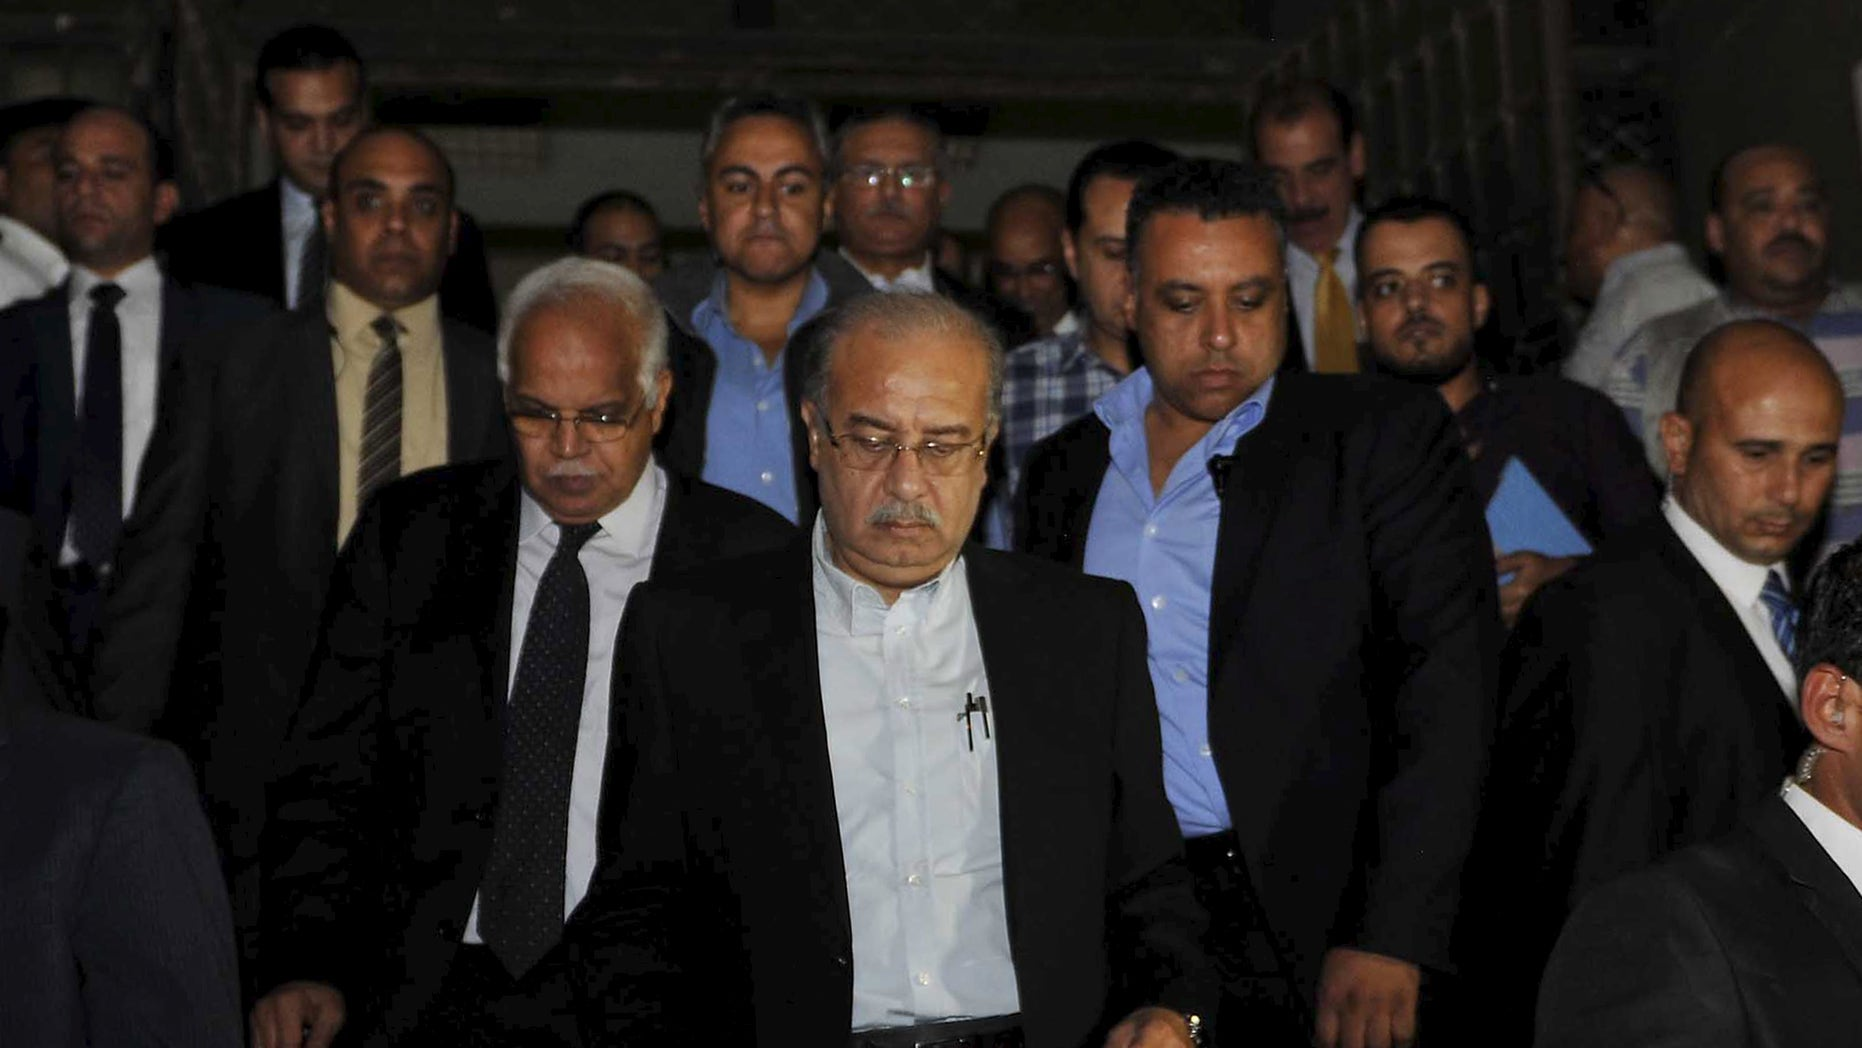 Egypt's Prime Minister Sherif Ismail, center, denounced the attack, officials said.